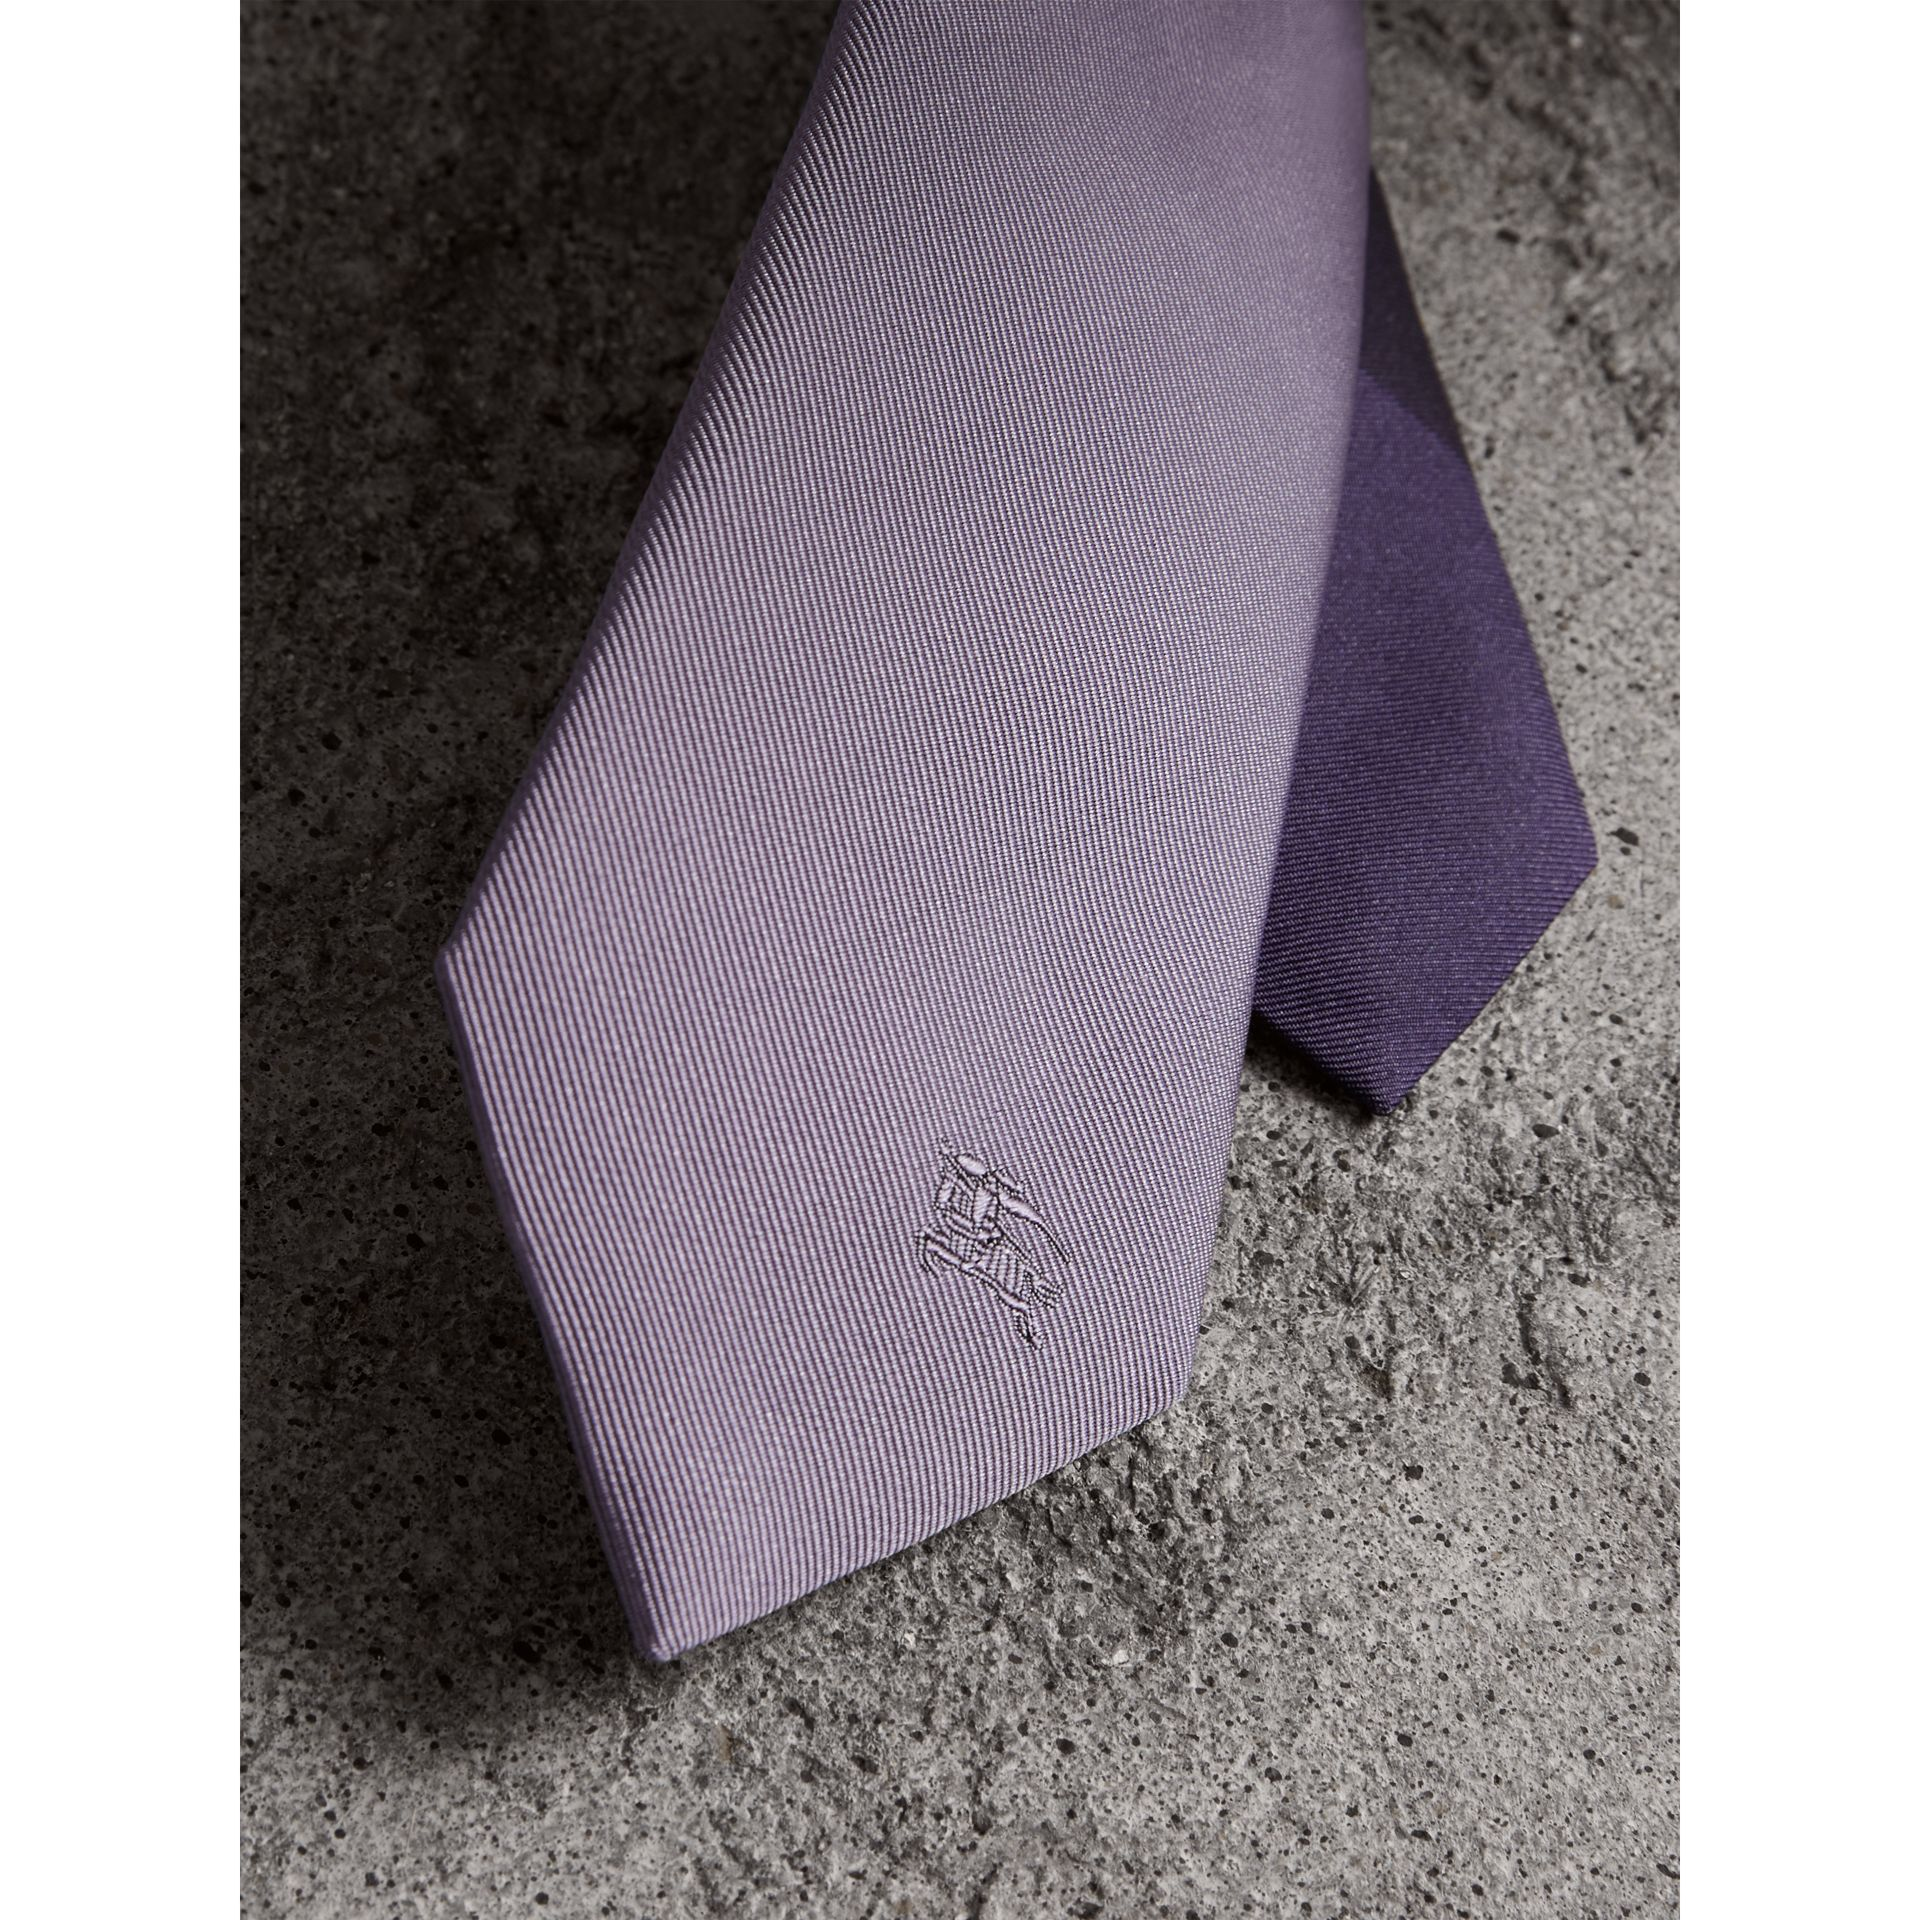 Slim Cut Check Silk Twill Tie in Lilac - Men | Burberry - gallery image 2